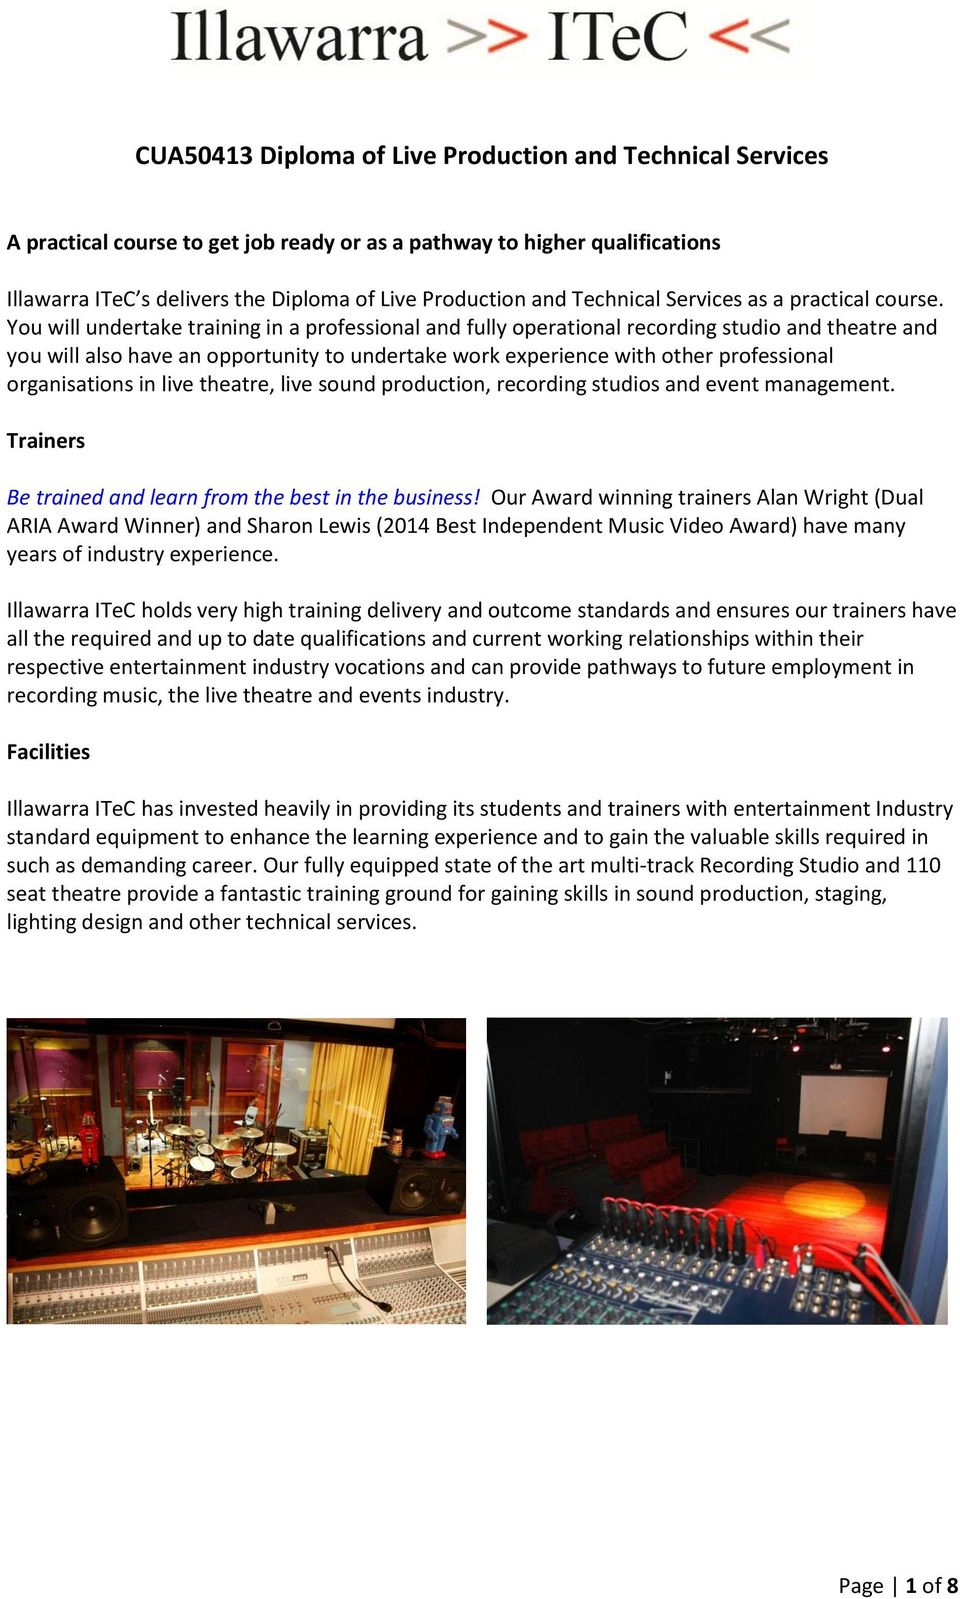 You will undertake training in a professional and fully operational recording studio and theatre and you will also have an opportunity to undertake work experience with other professional